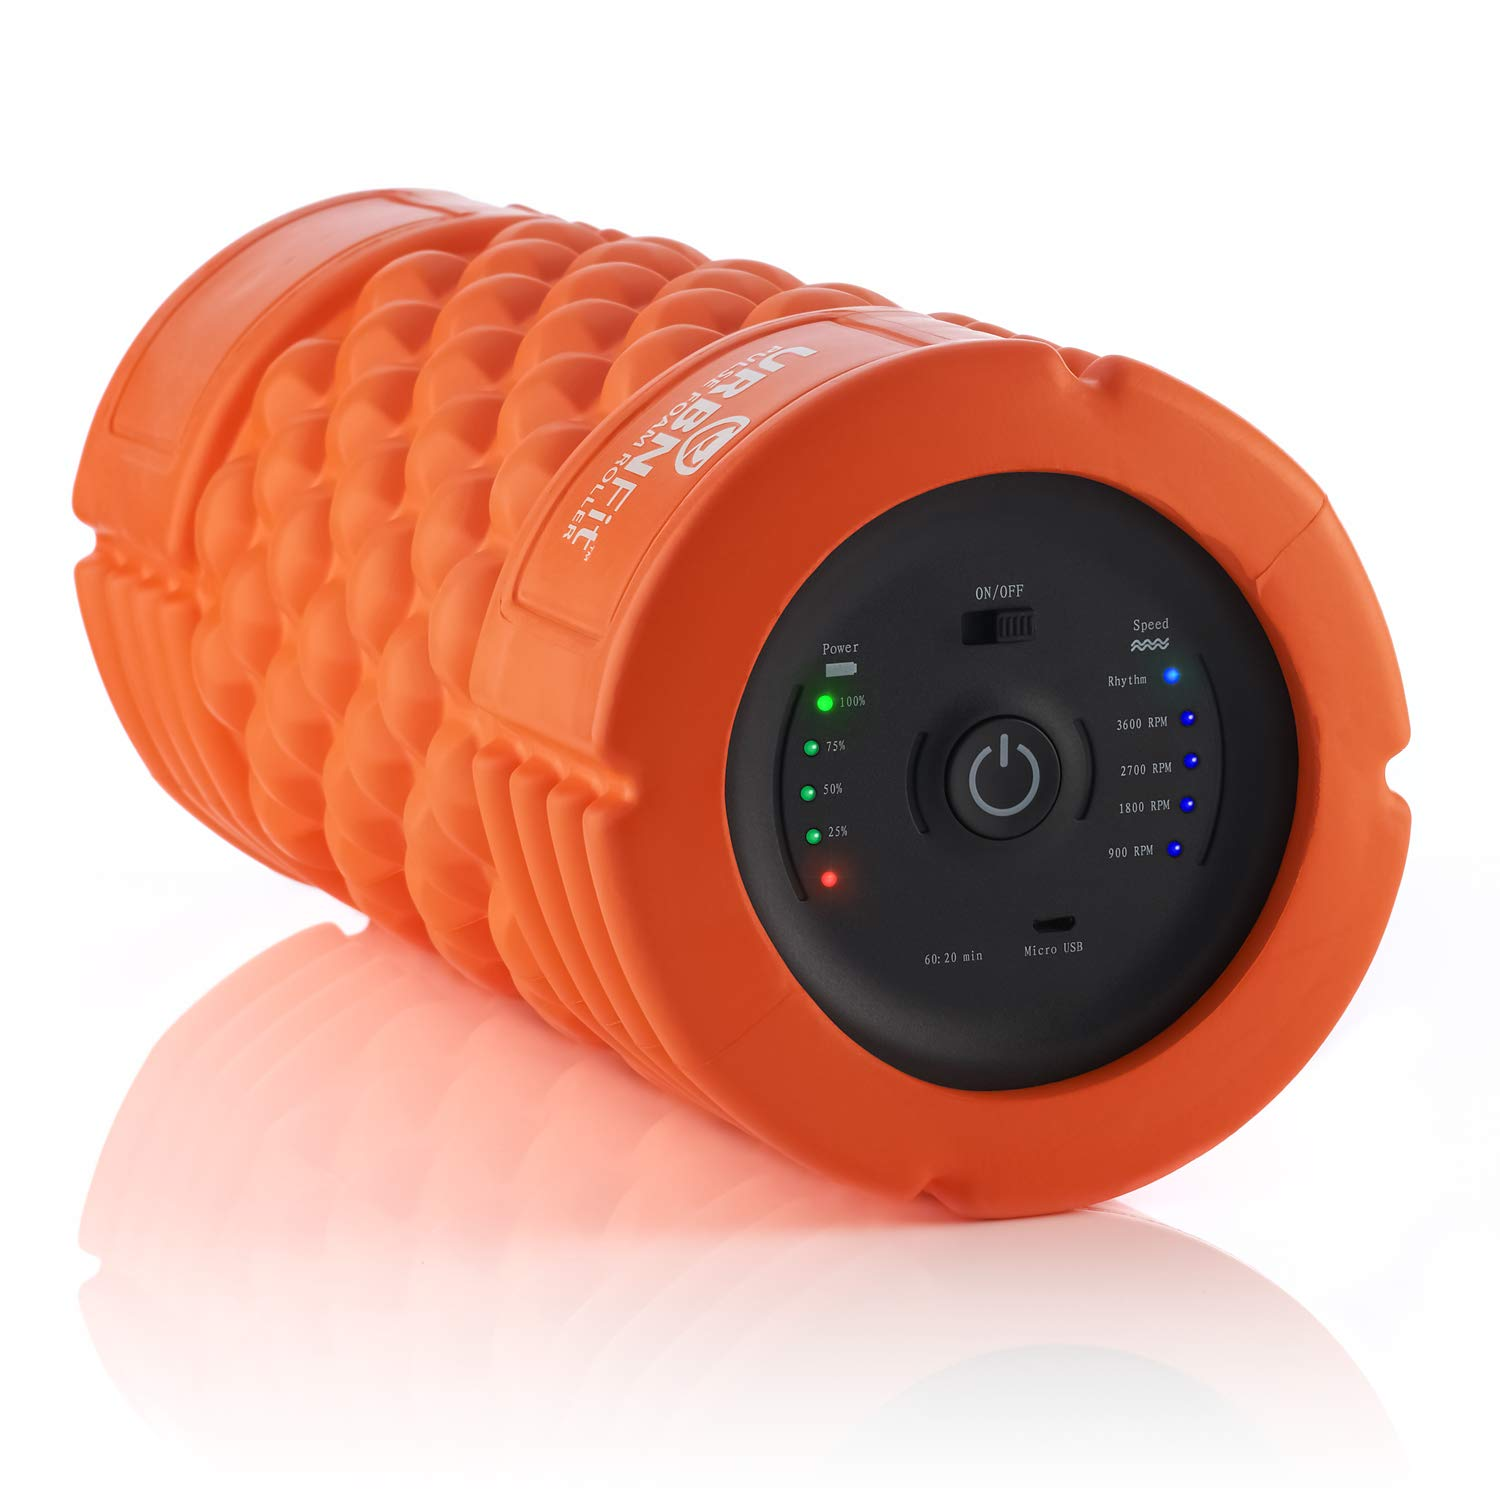 Vibrating Foam Roller - 5-Speed Massager and Roller for Muscle Recovery, Deep Tissue Trigger Point Massage Therapy - 5 Levels from Low To High Intensity Massage For Workouts -Includes Stretching Guide by URBNFit (Image #1)